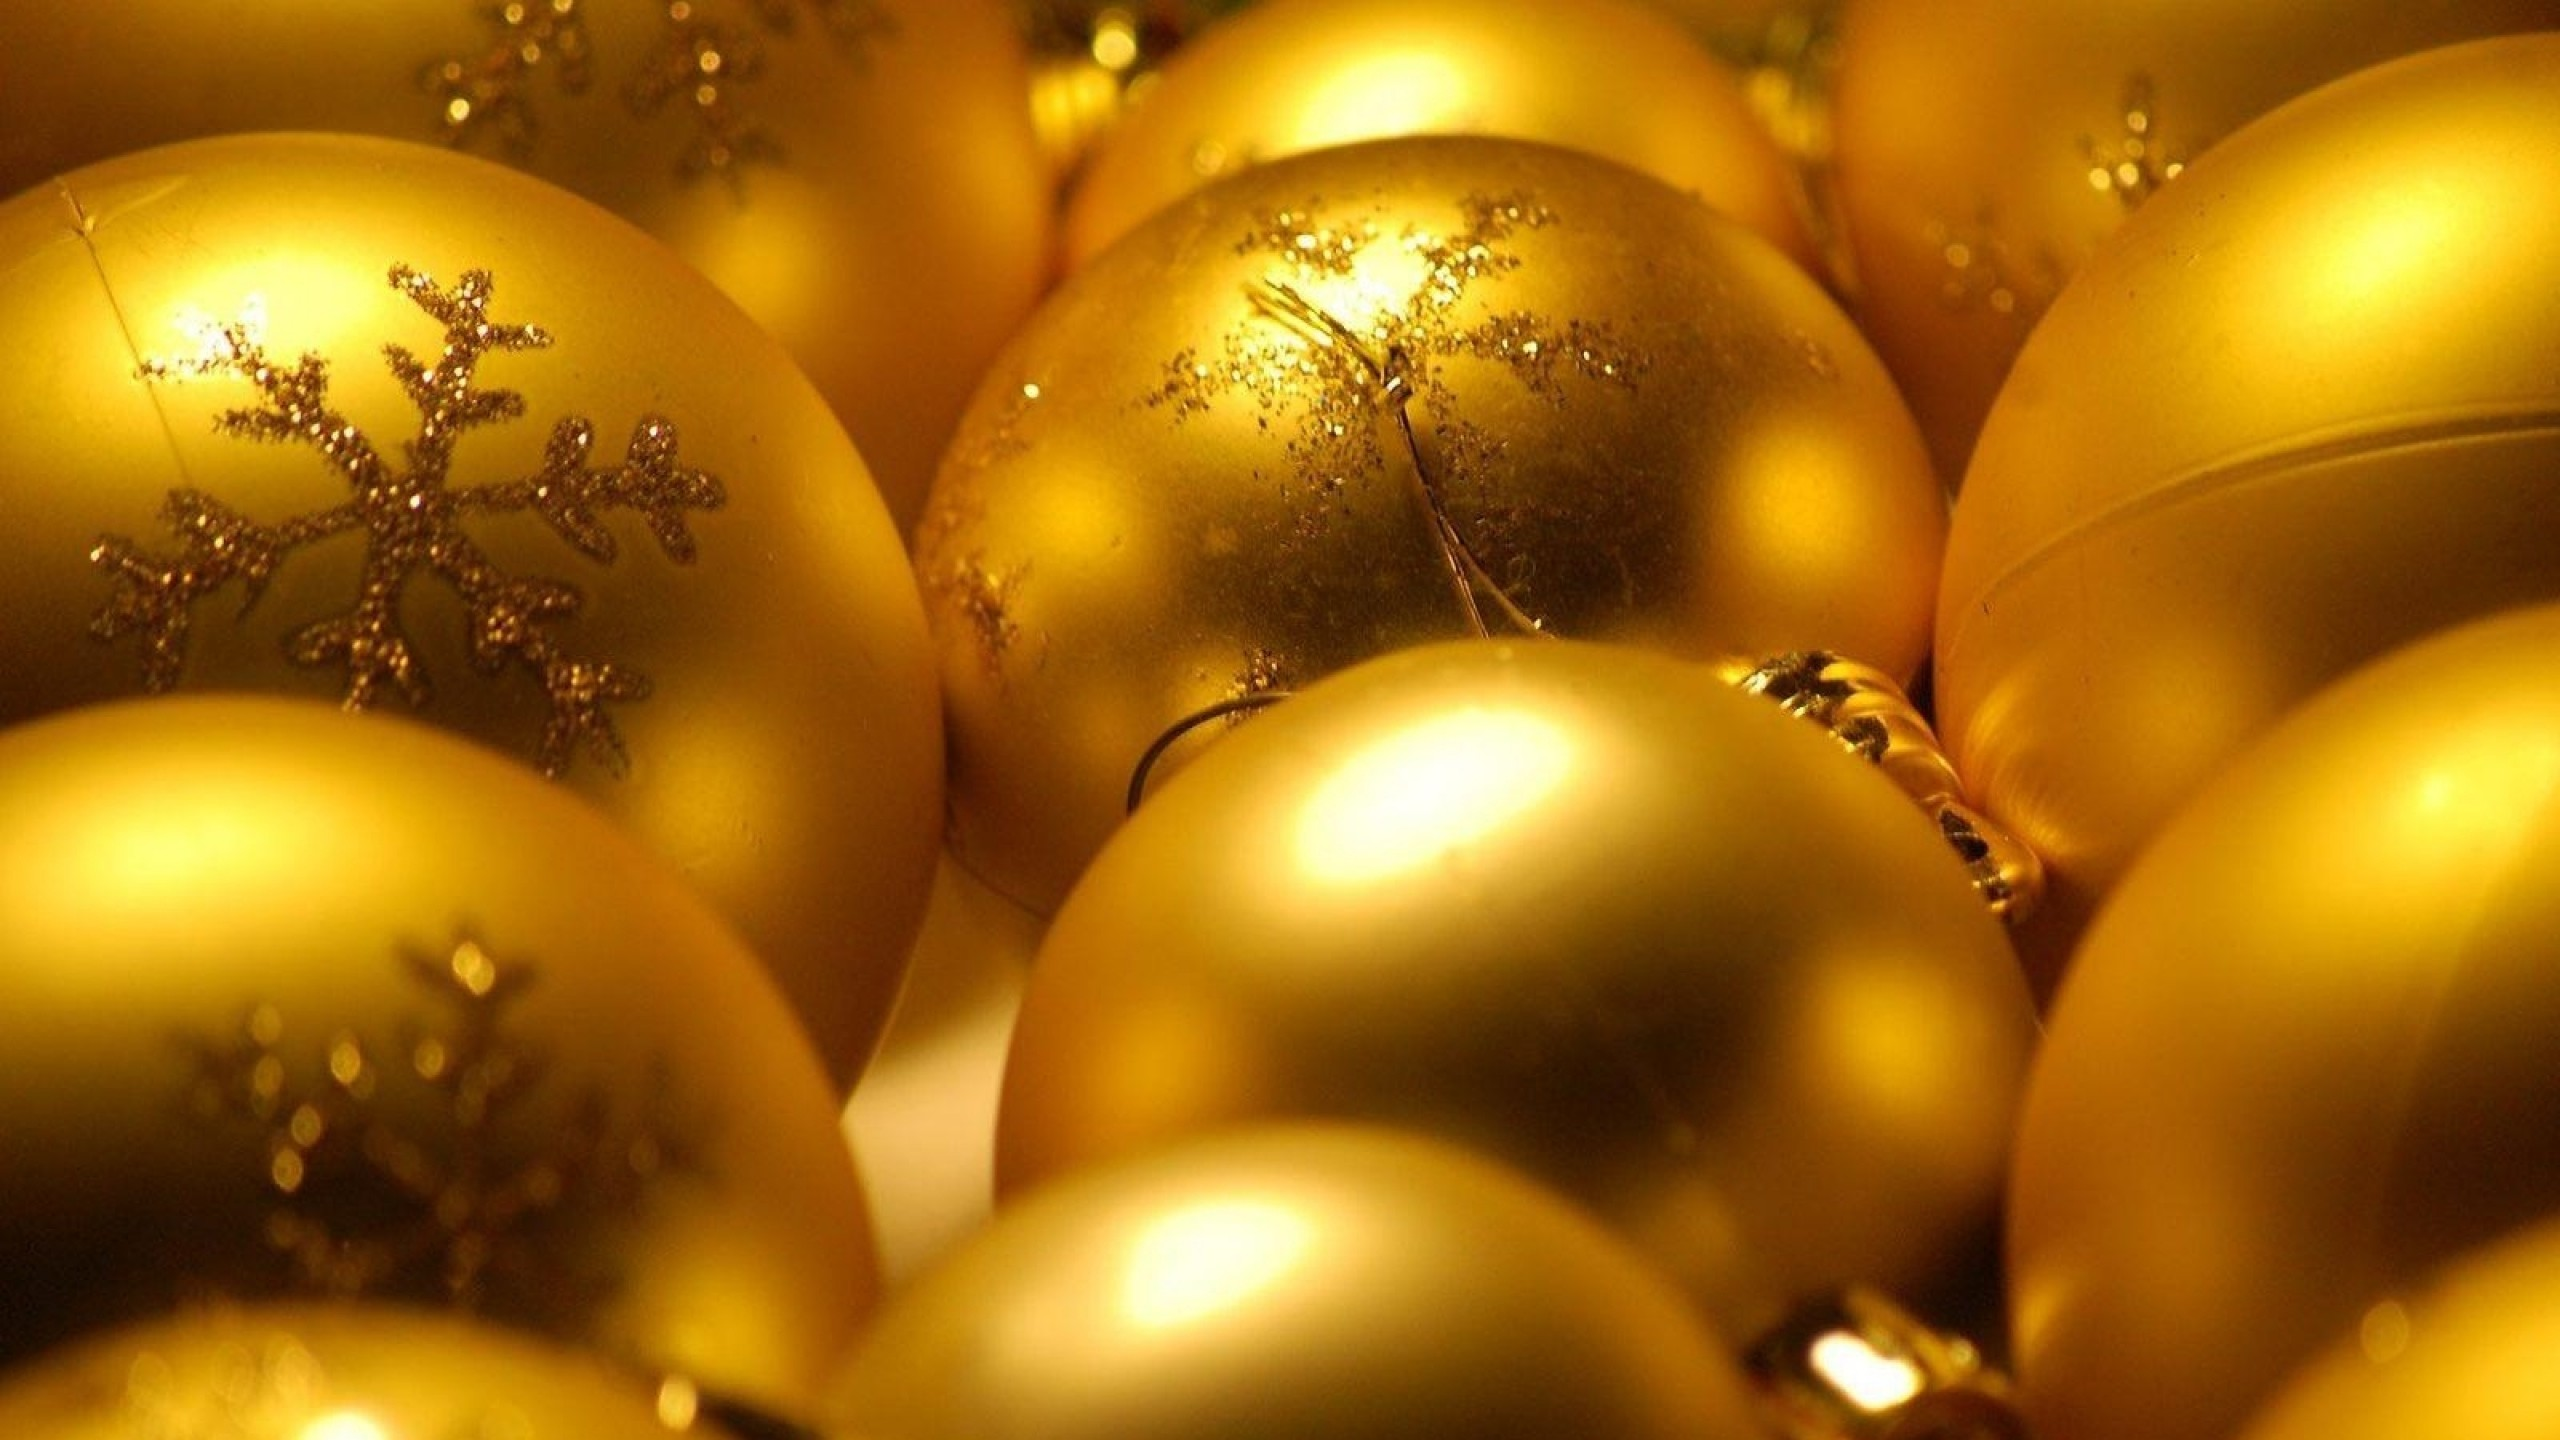 download wallpaper x christmas decorations balloons gold with gold glitter  wallpaper.